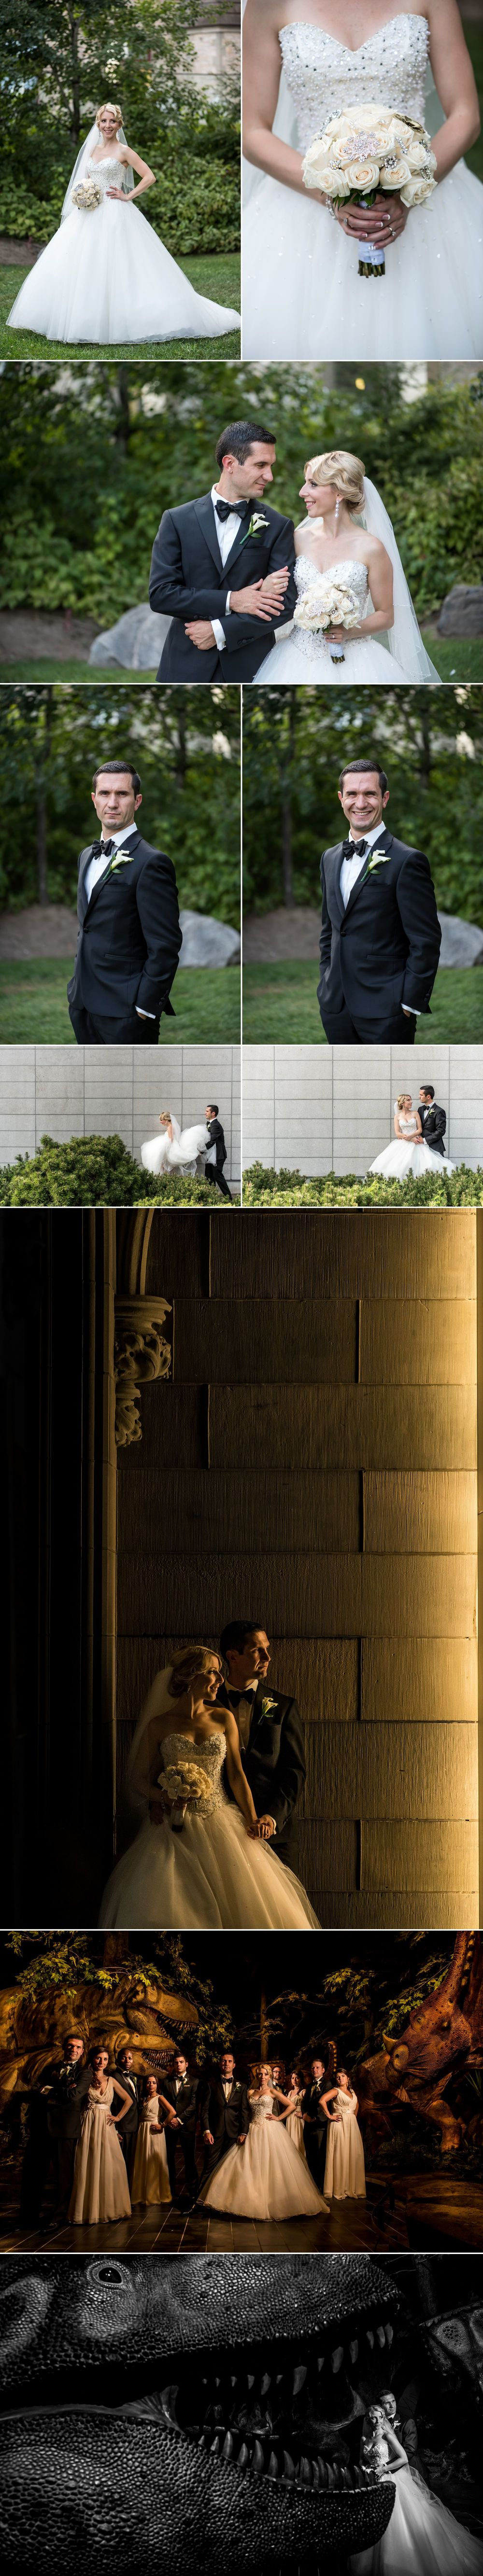 Wedding photographs at the Museum of Nature in Ottawa